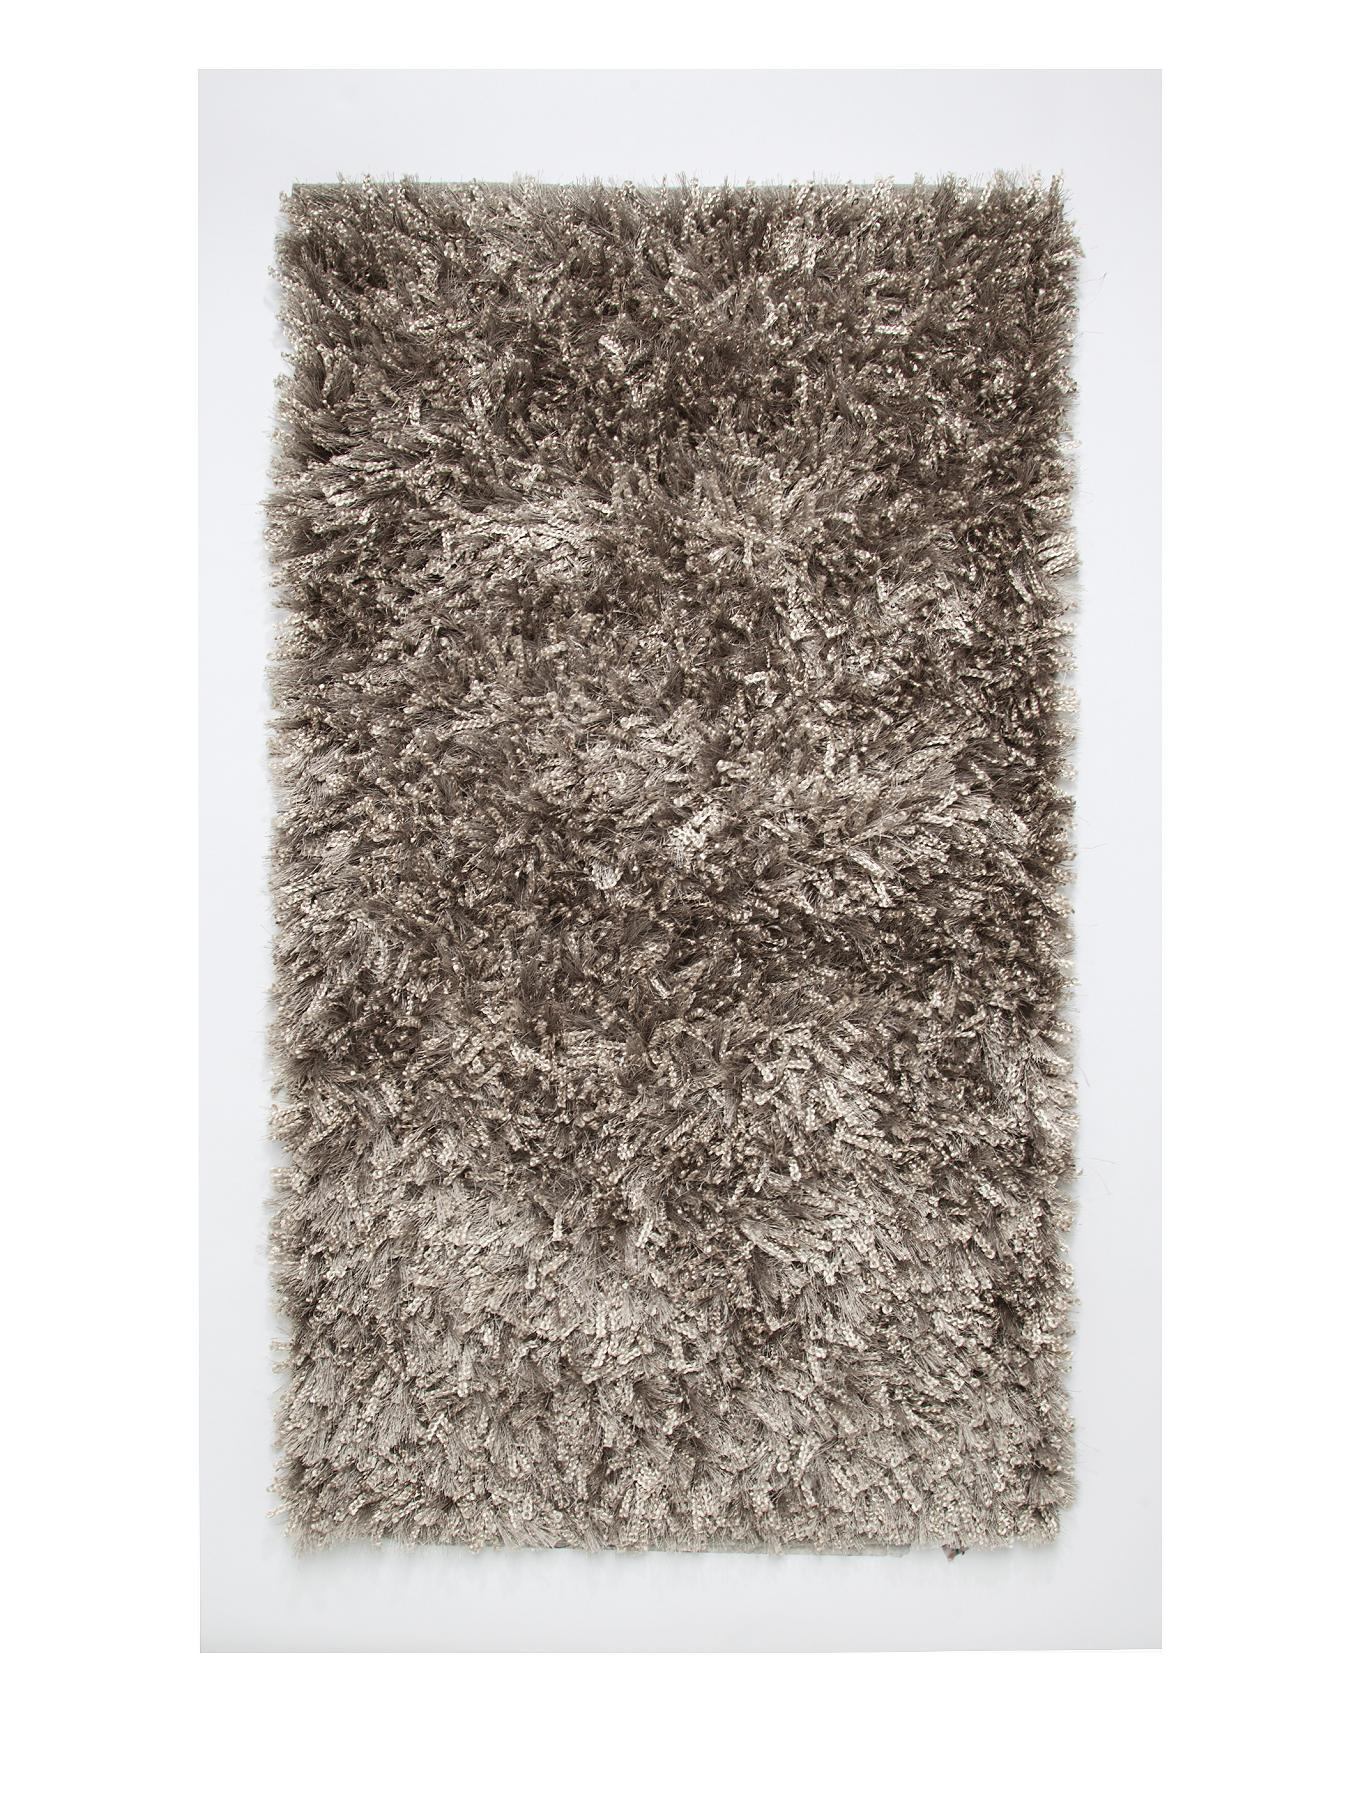 Glimmer Bathmat - White, White,Black,Red,Grey